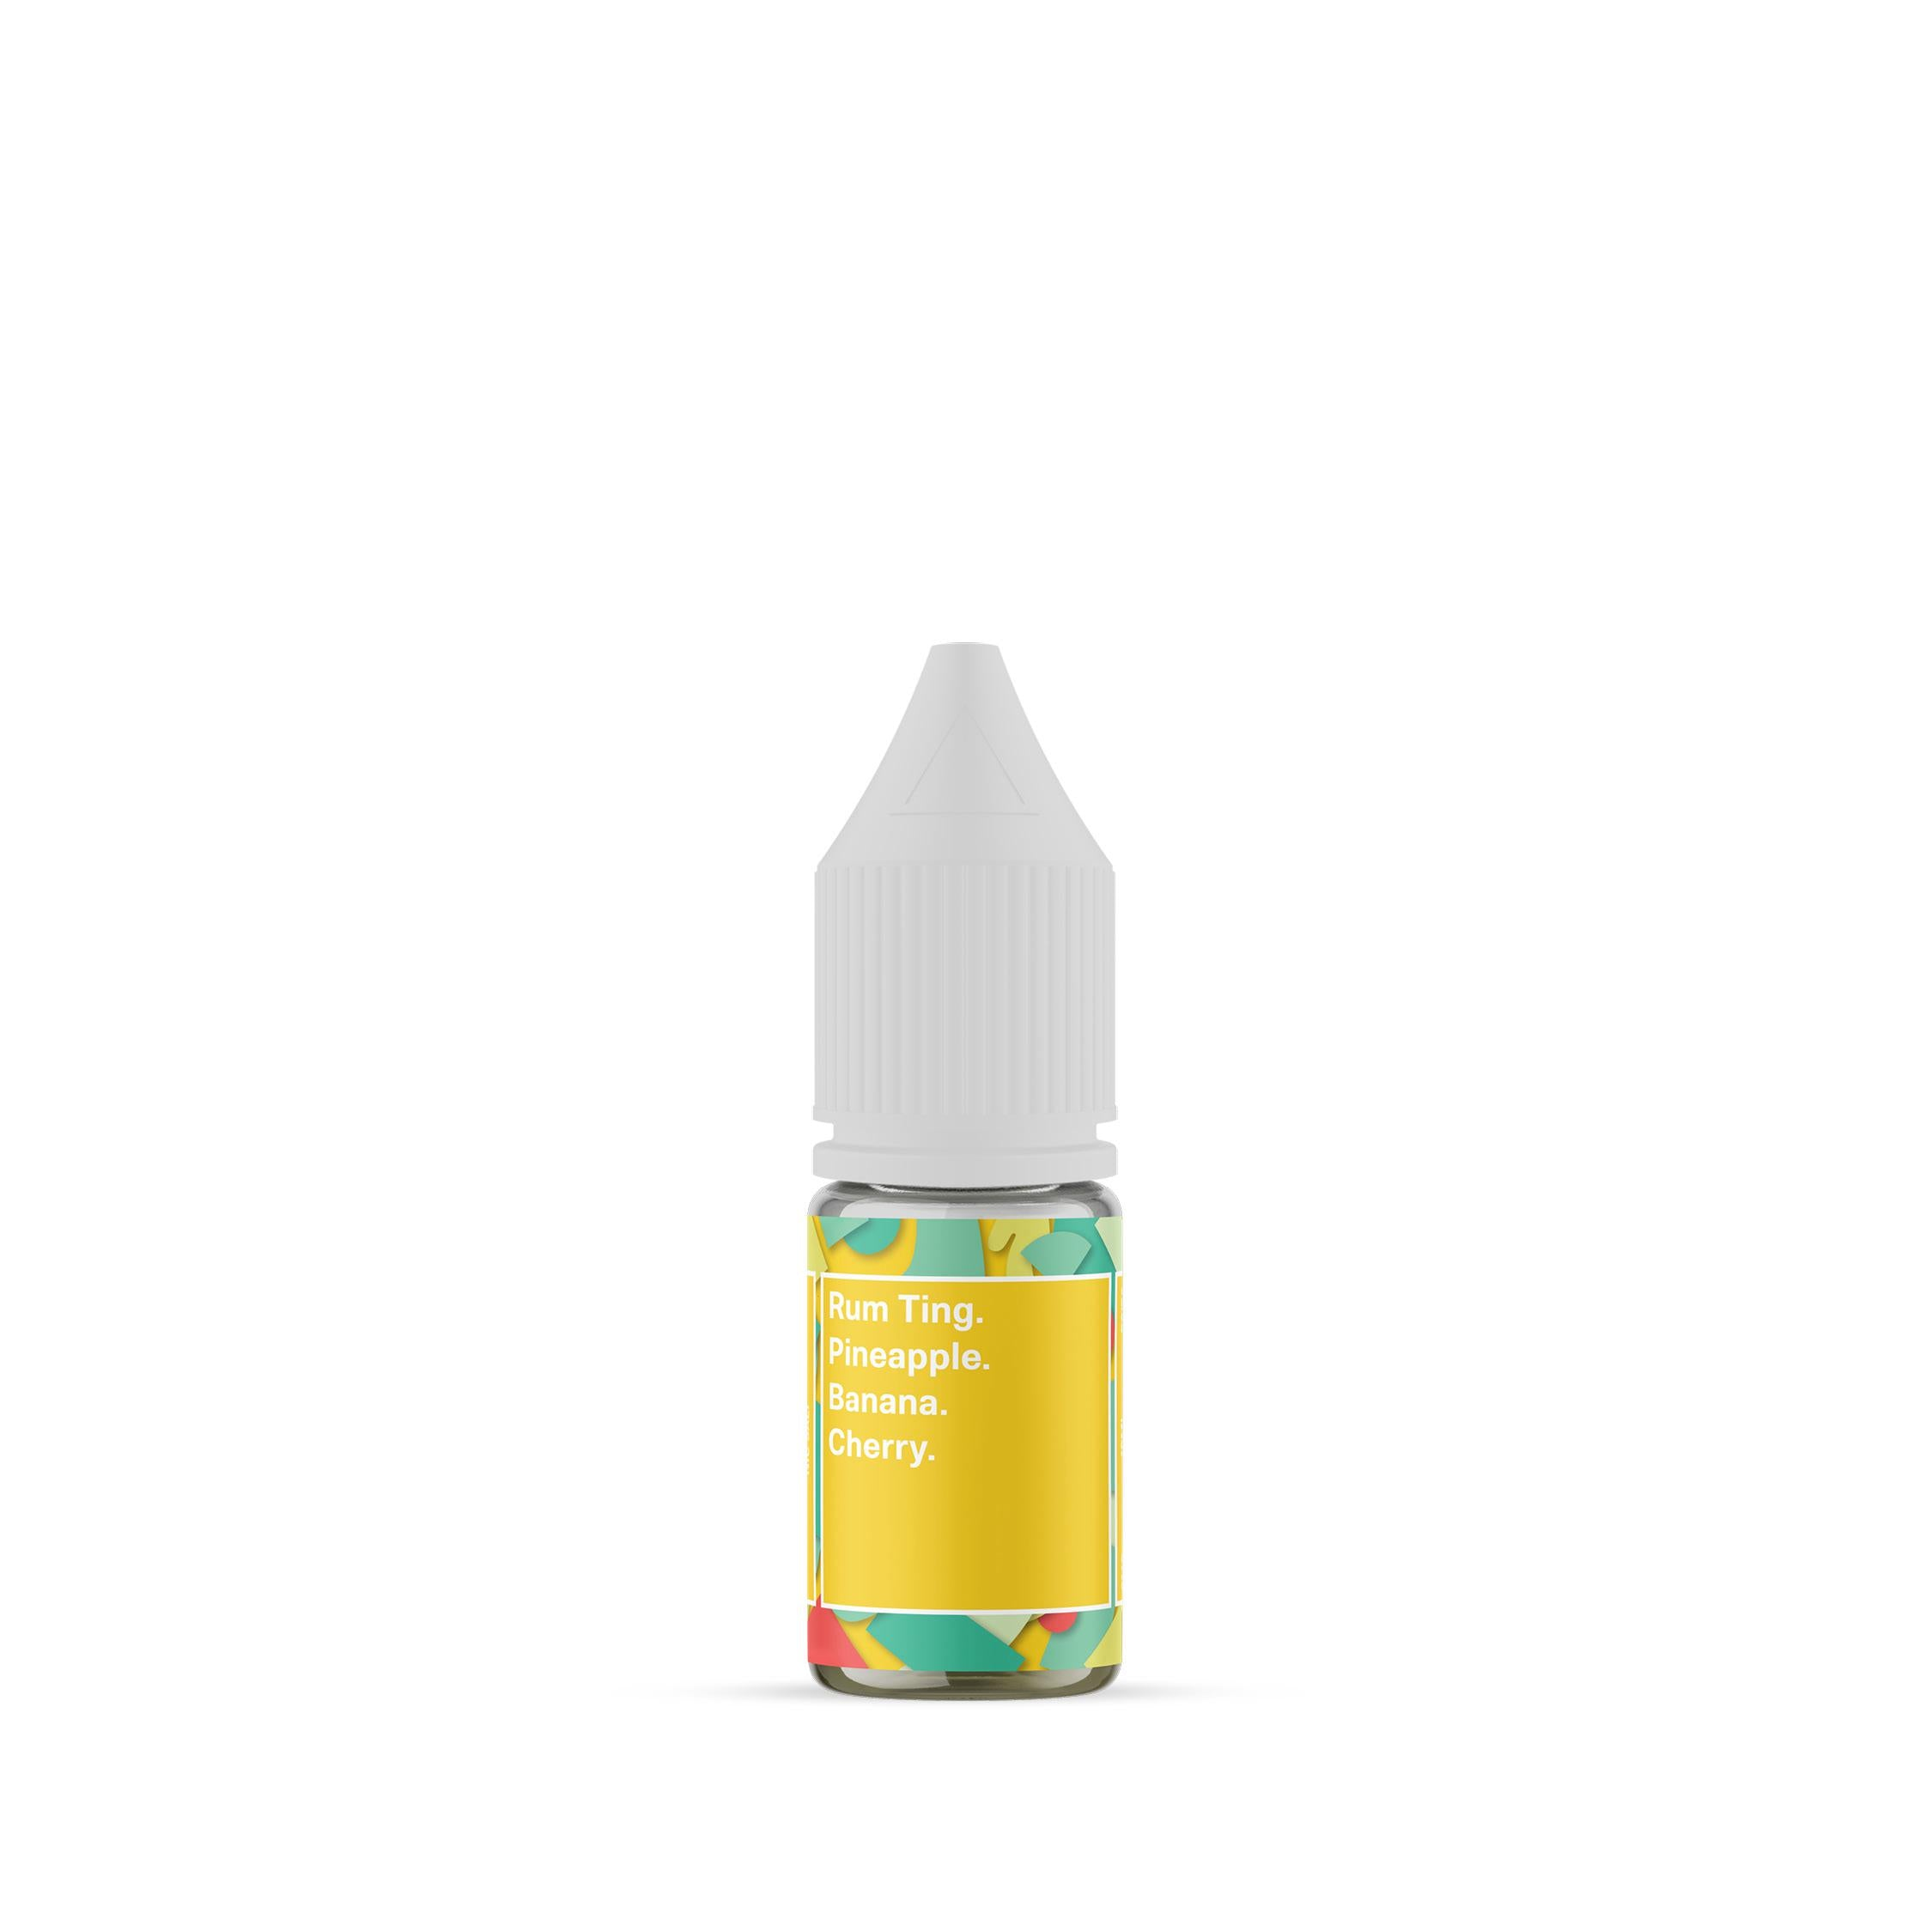 Rum Ting Nic Salt by Supergood. (EU Version)